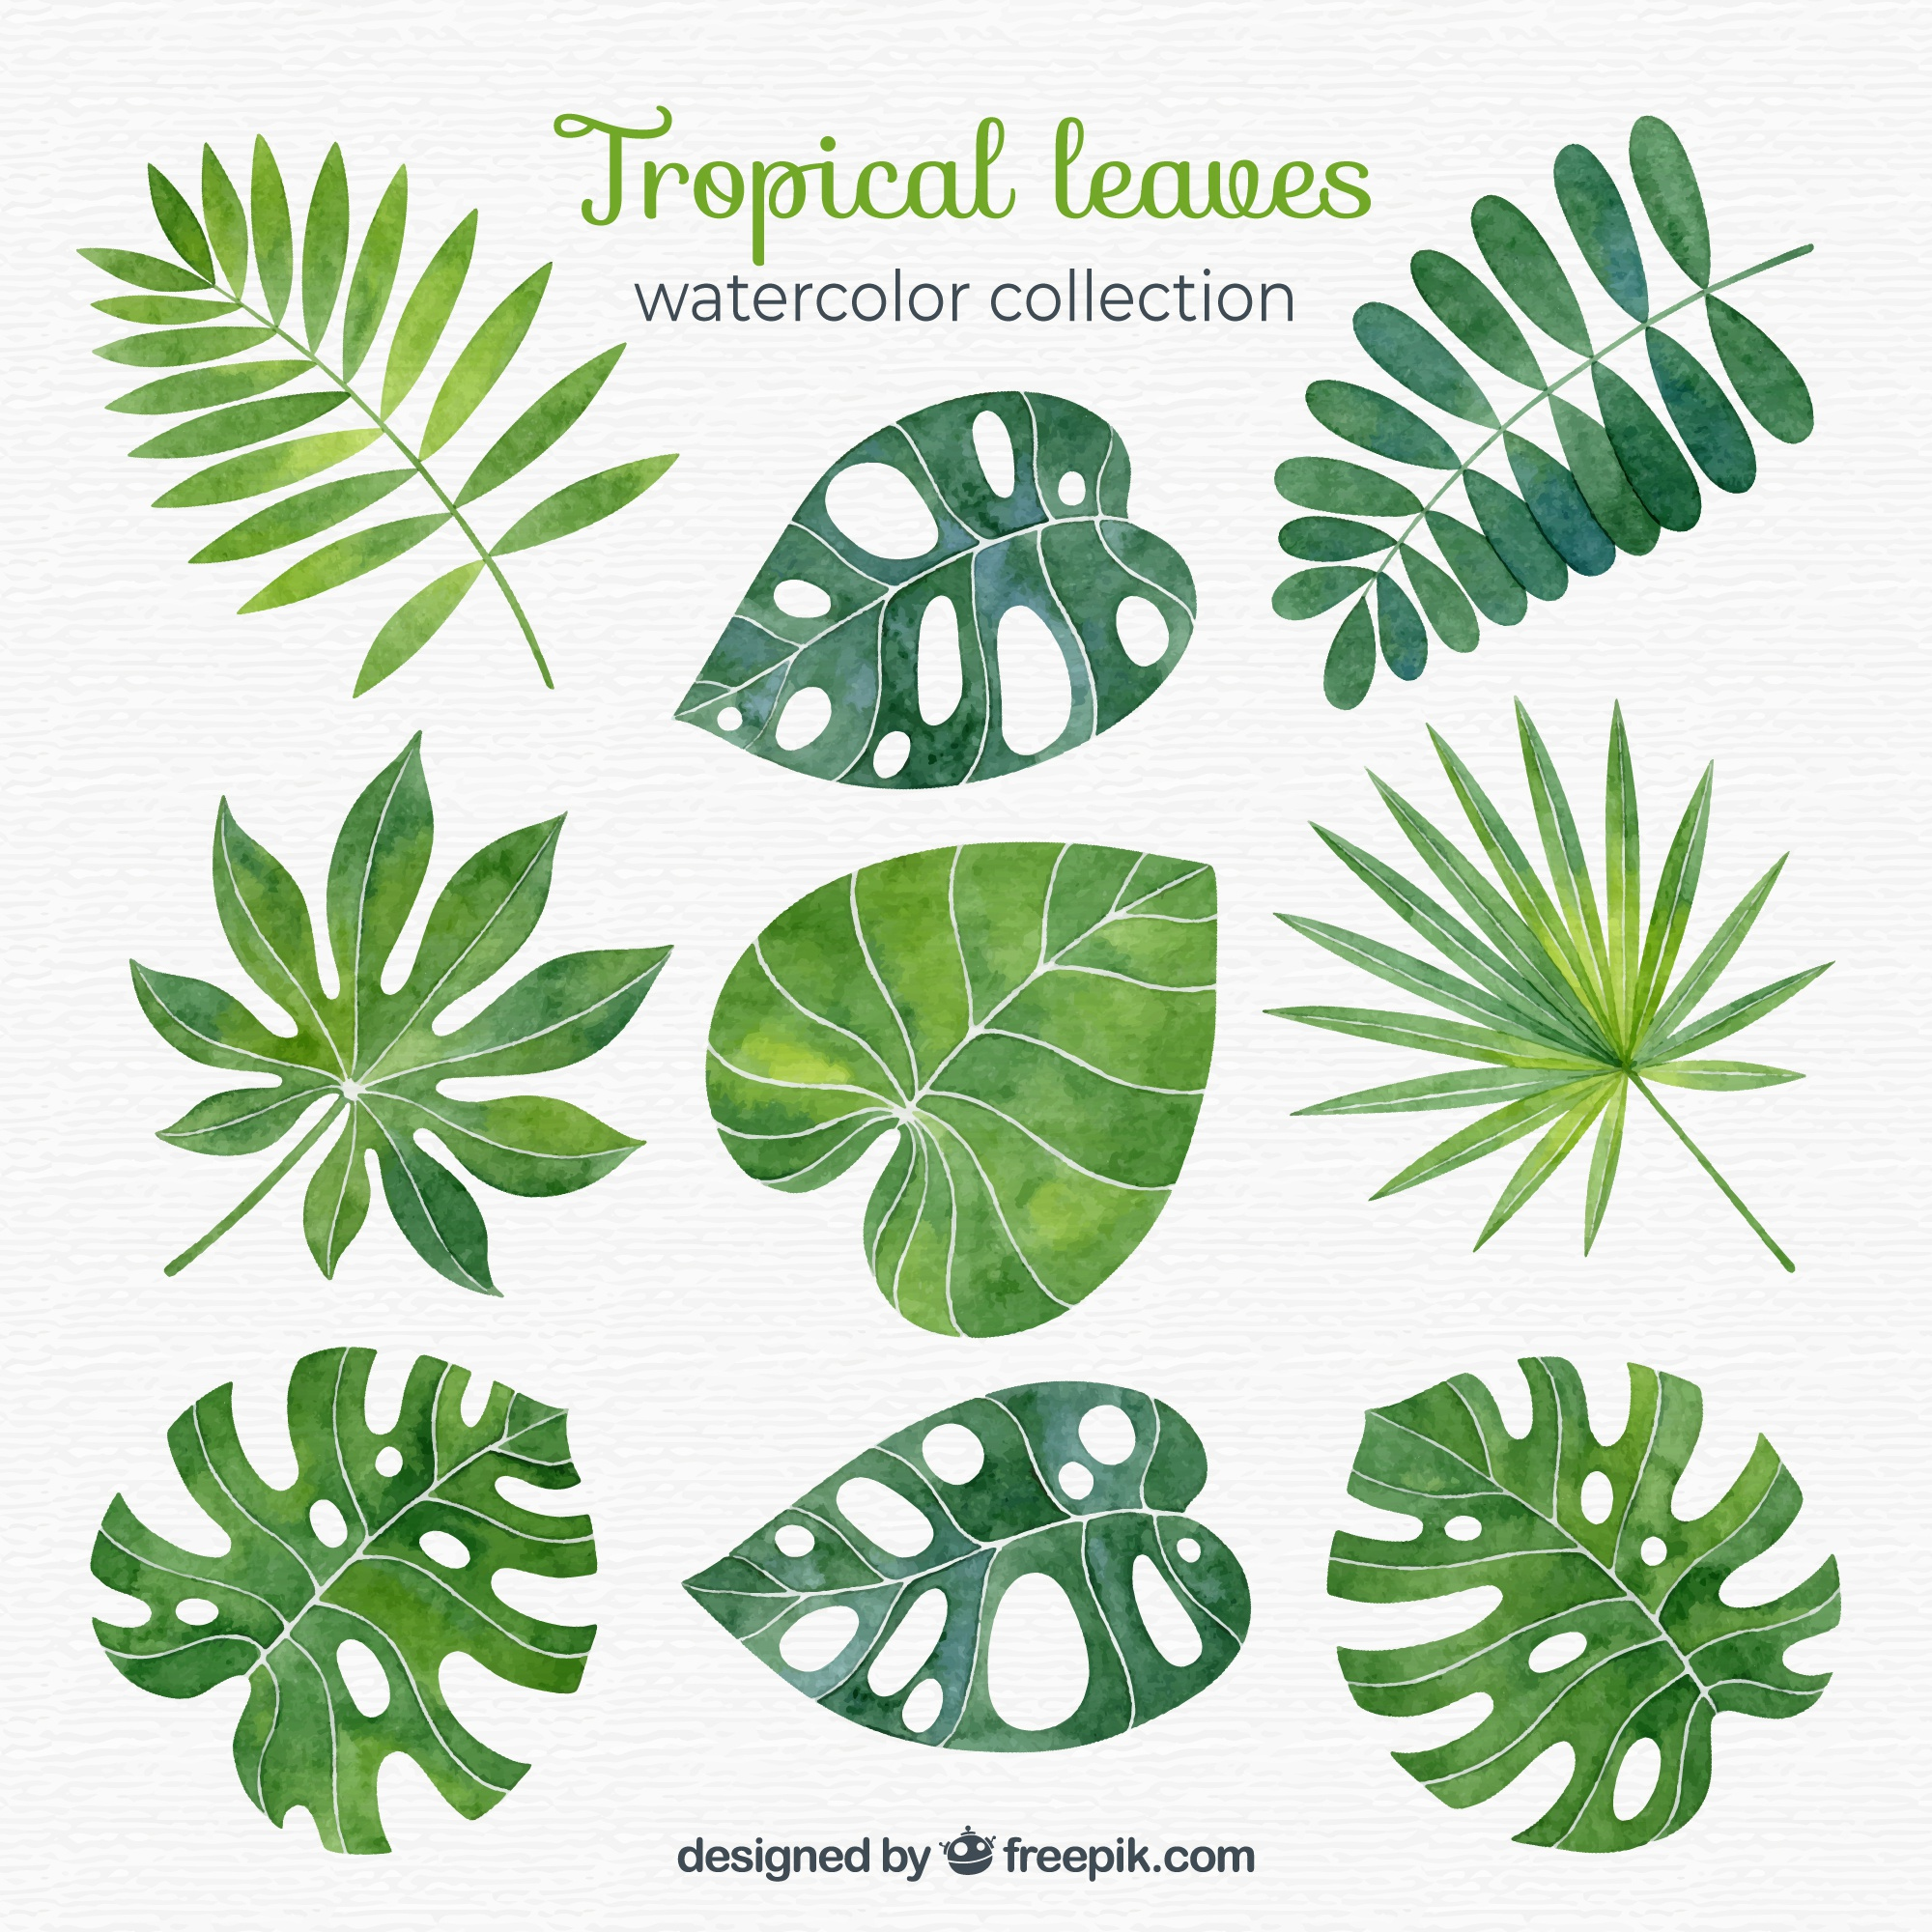 Tropical leaves collection in watercolor style